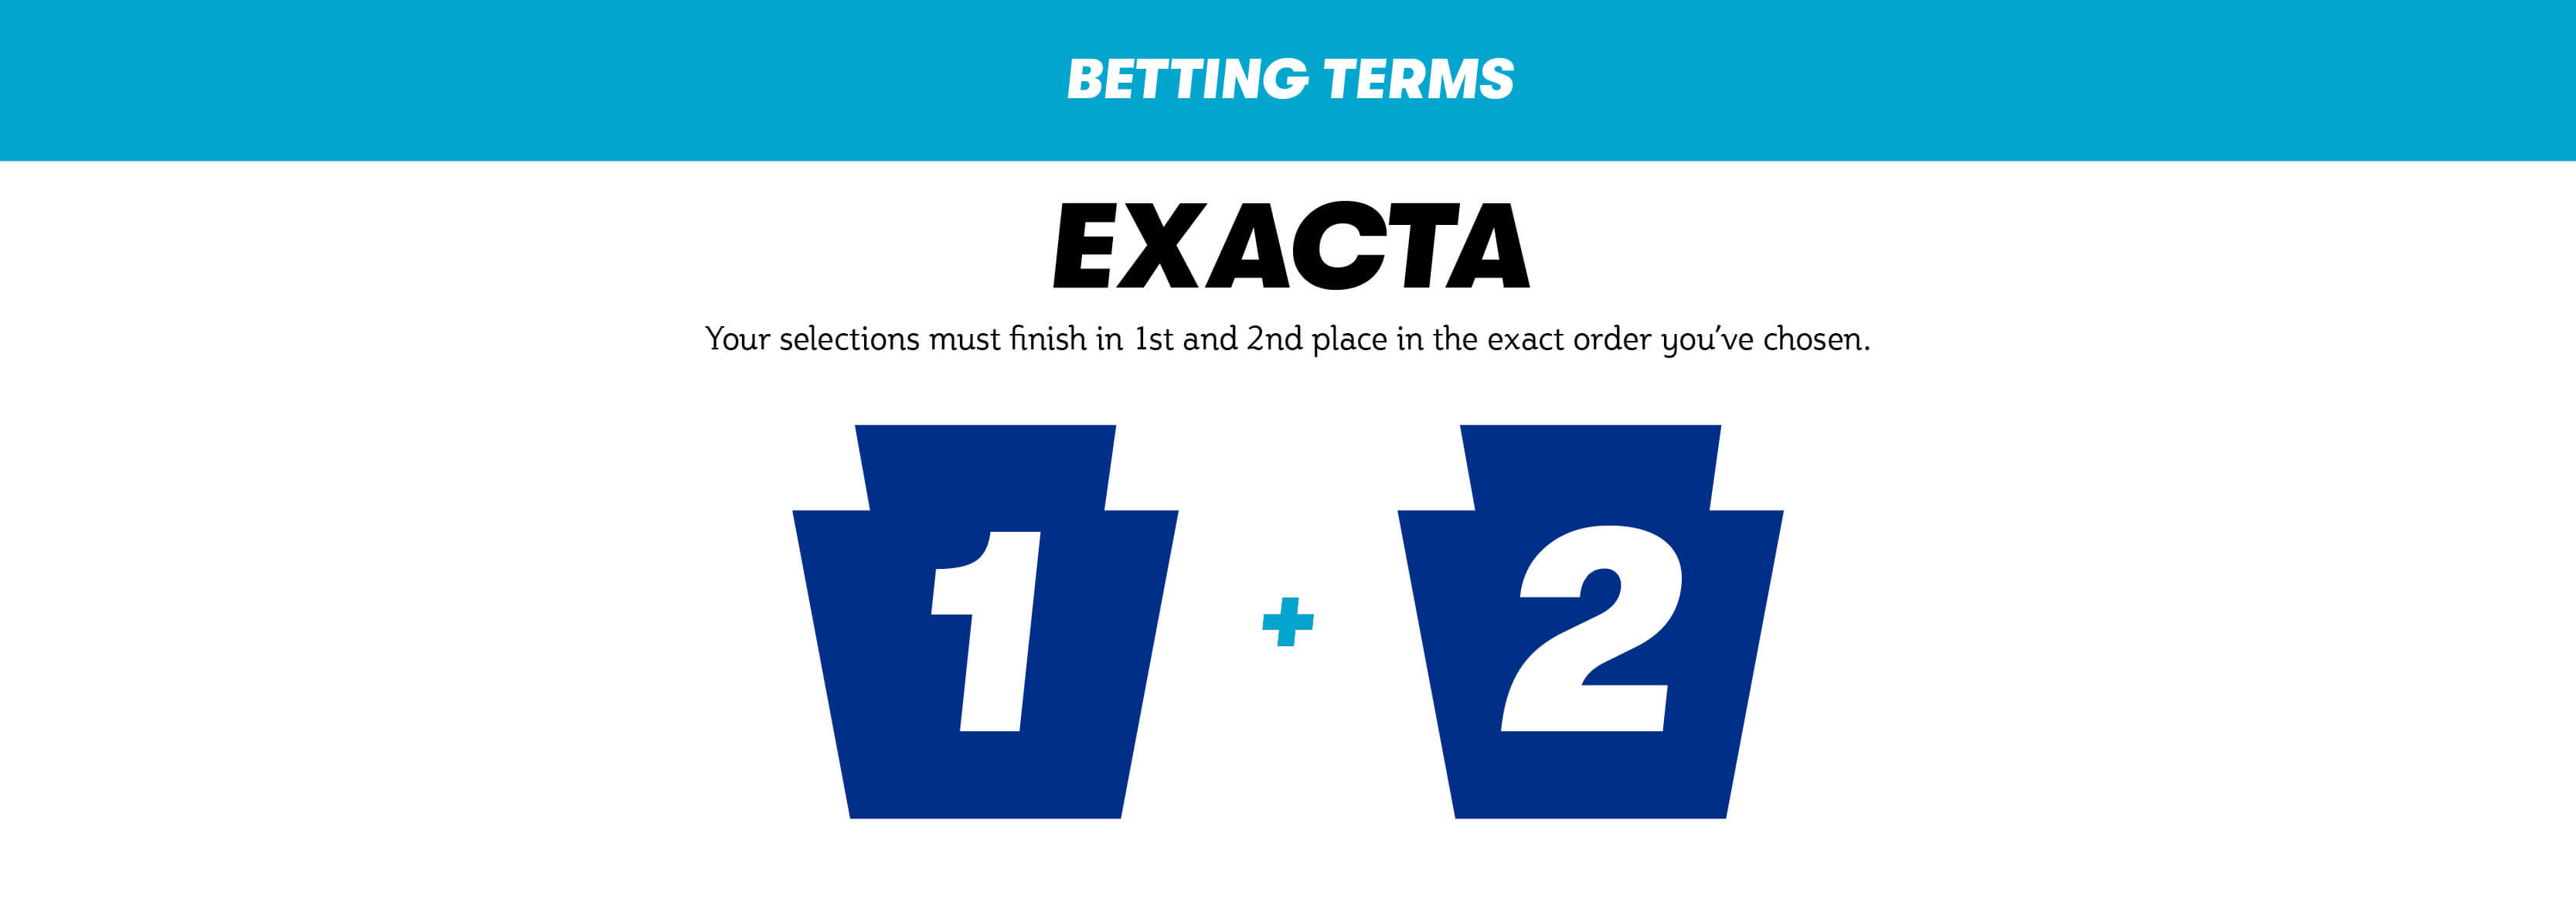 Exacta. Your selections must finish in first and second place in the exact order you've chosen.